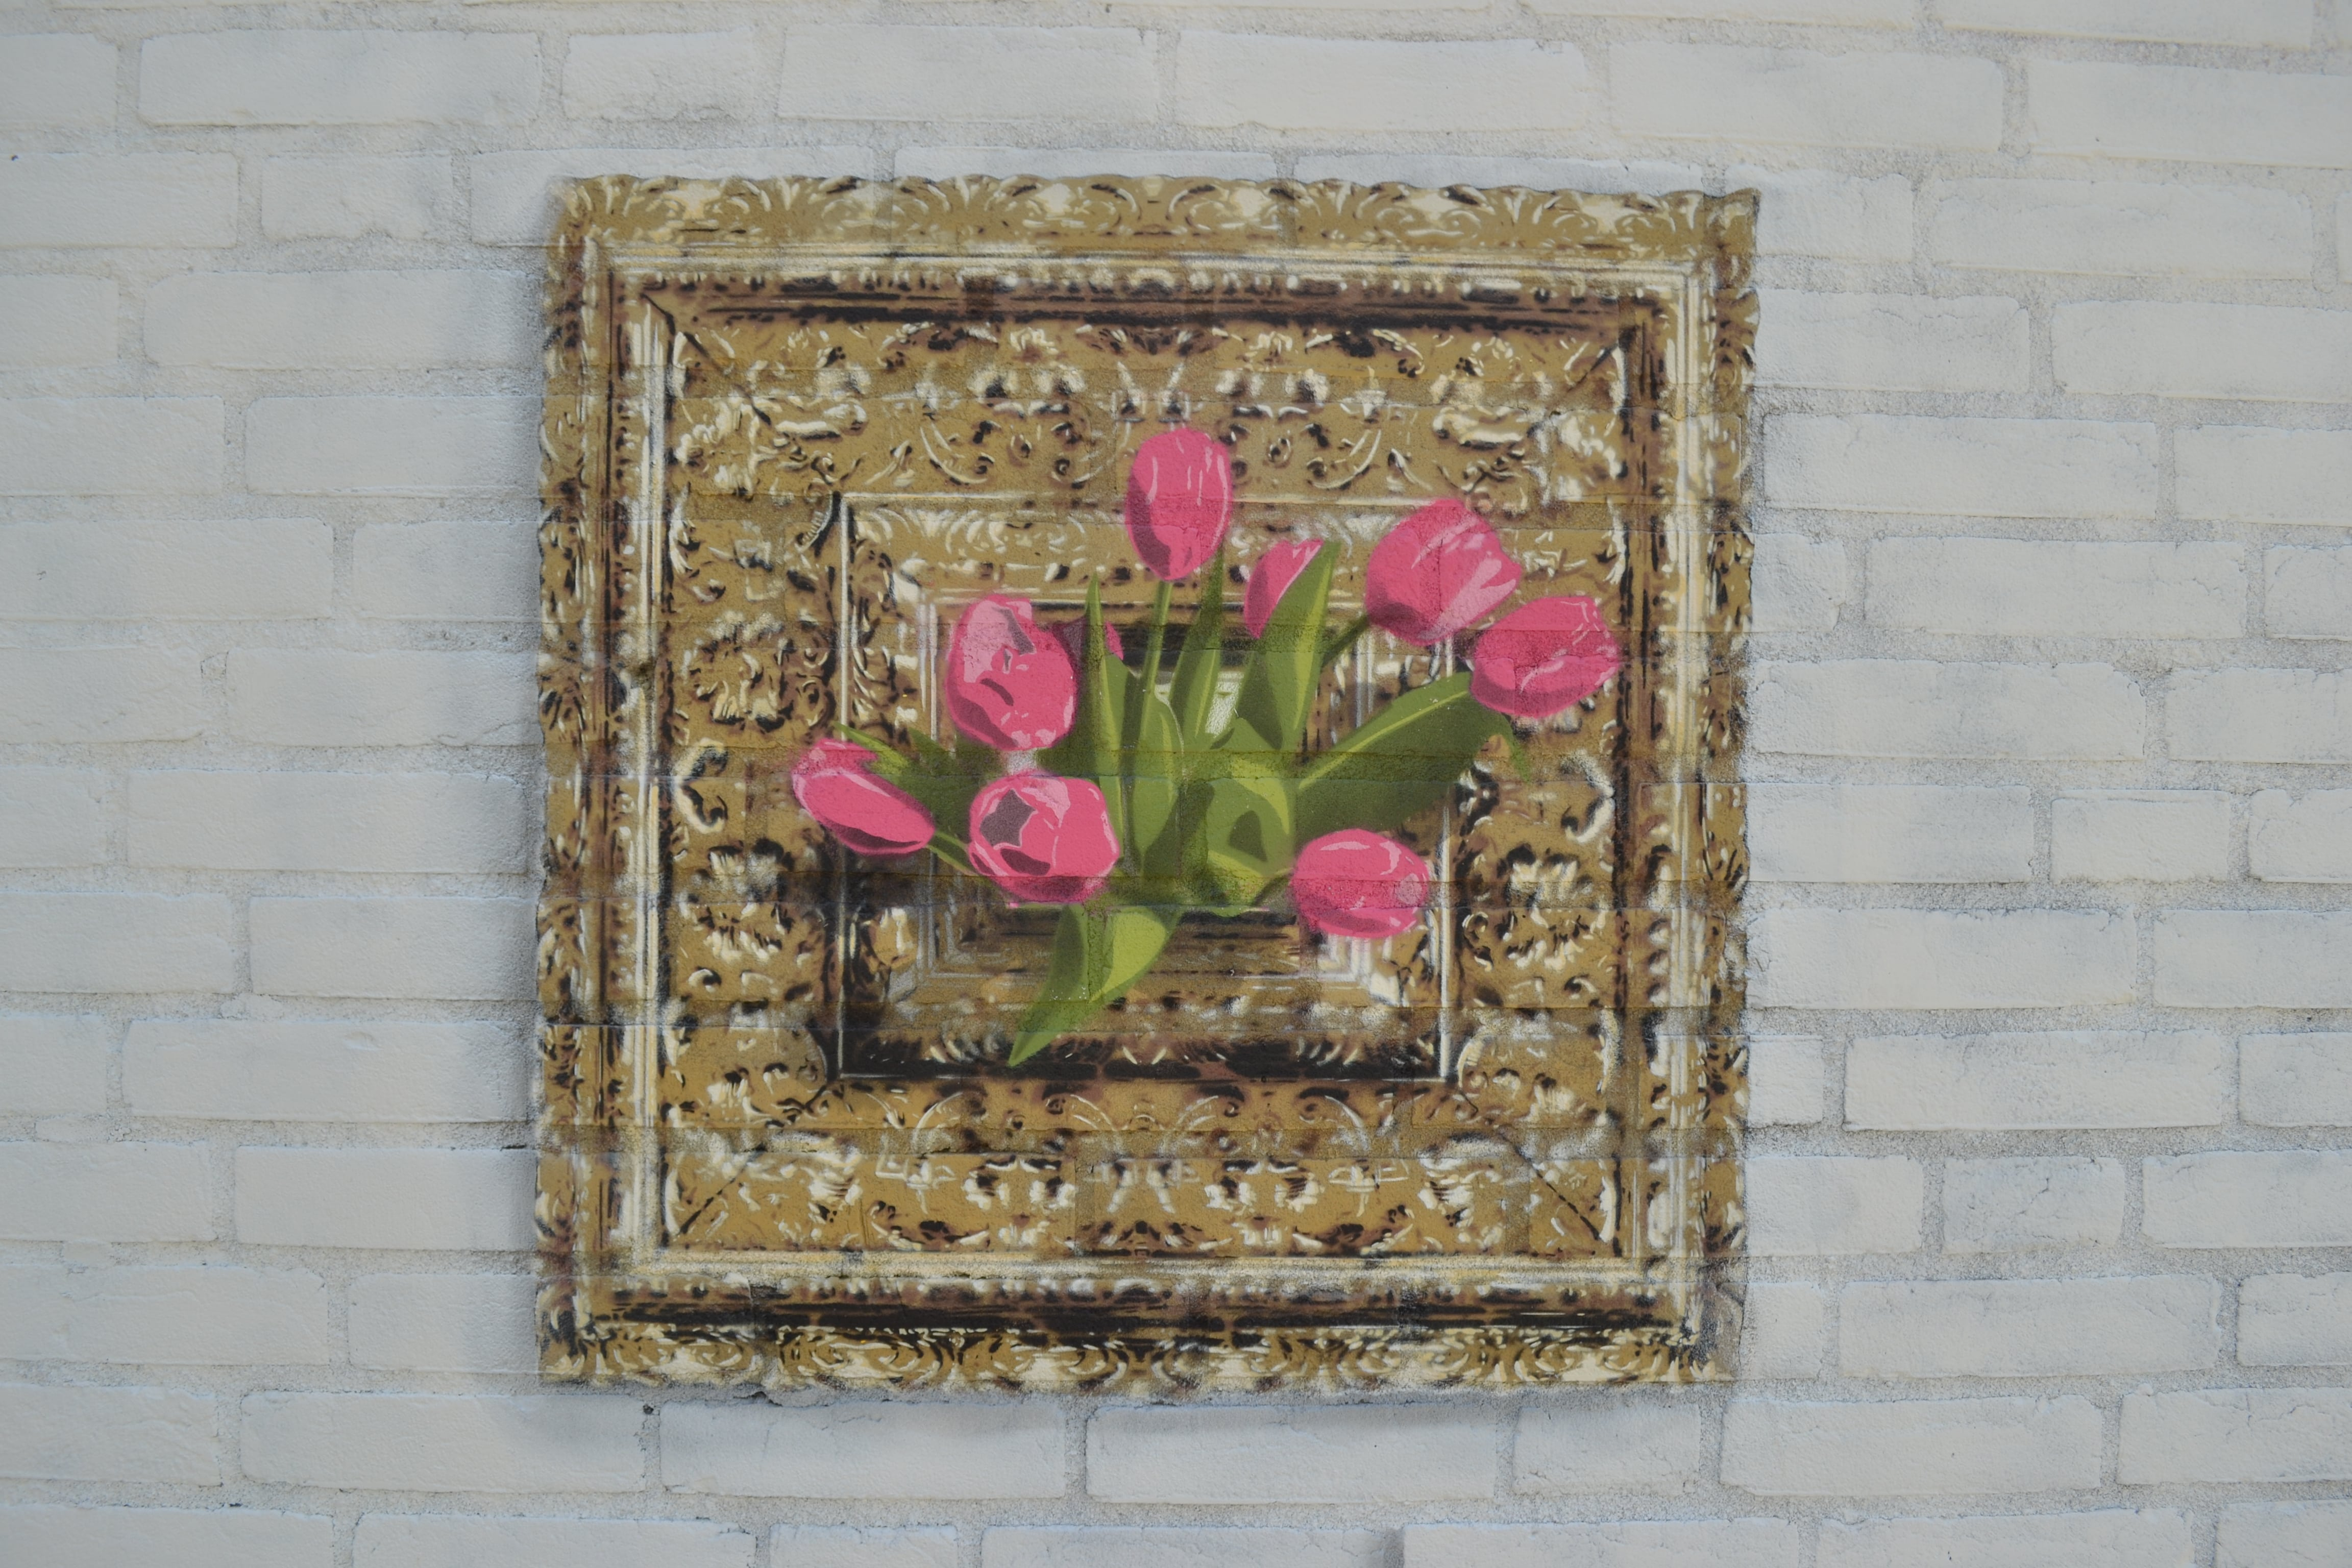 Ode to tulips_E.Lee_2016-min